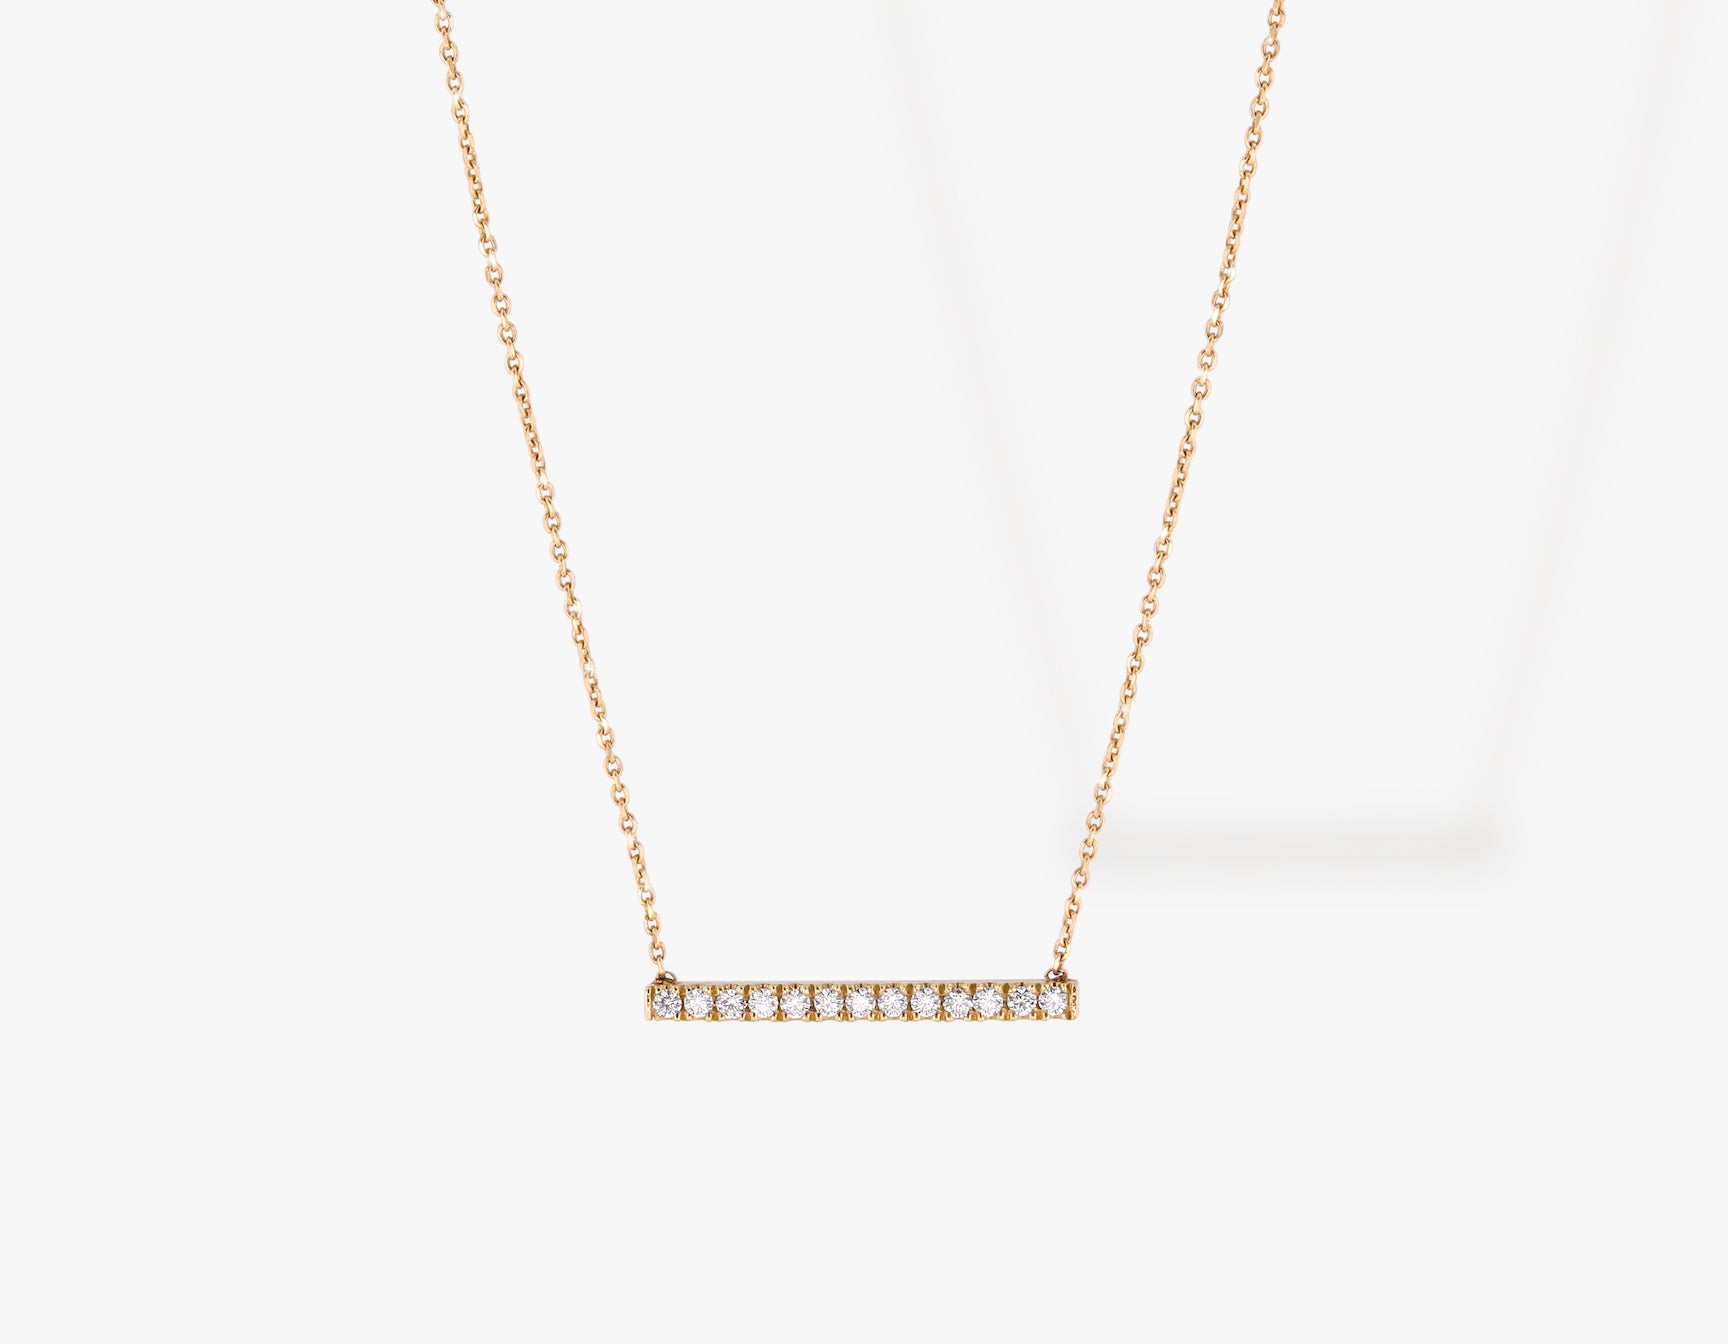 Vrai solid gold Pave Line Necklace, 14K Rose Gold